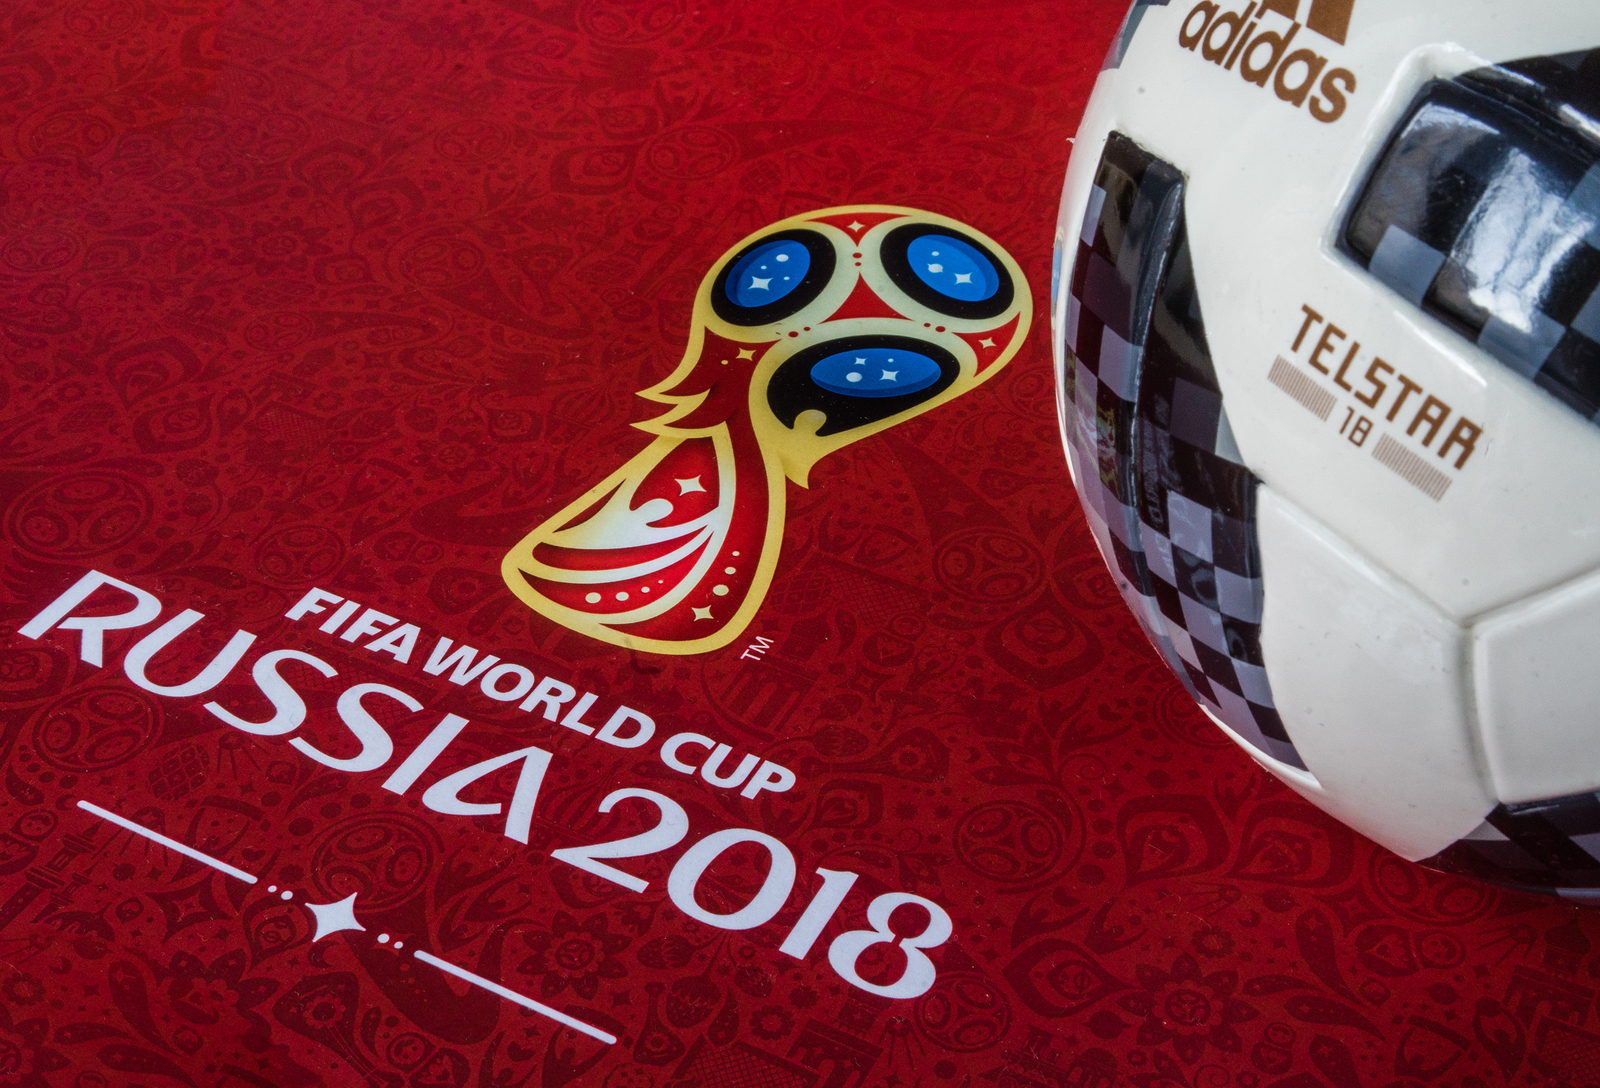 Guidance For The 2018 FIFA World Cup In Russia